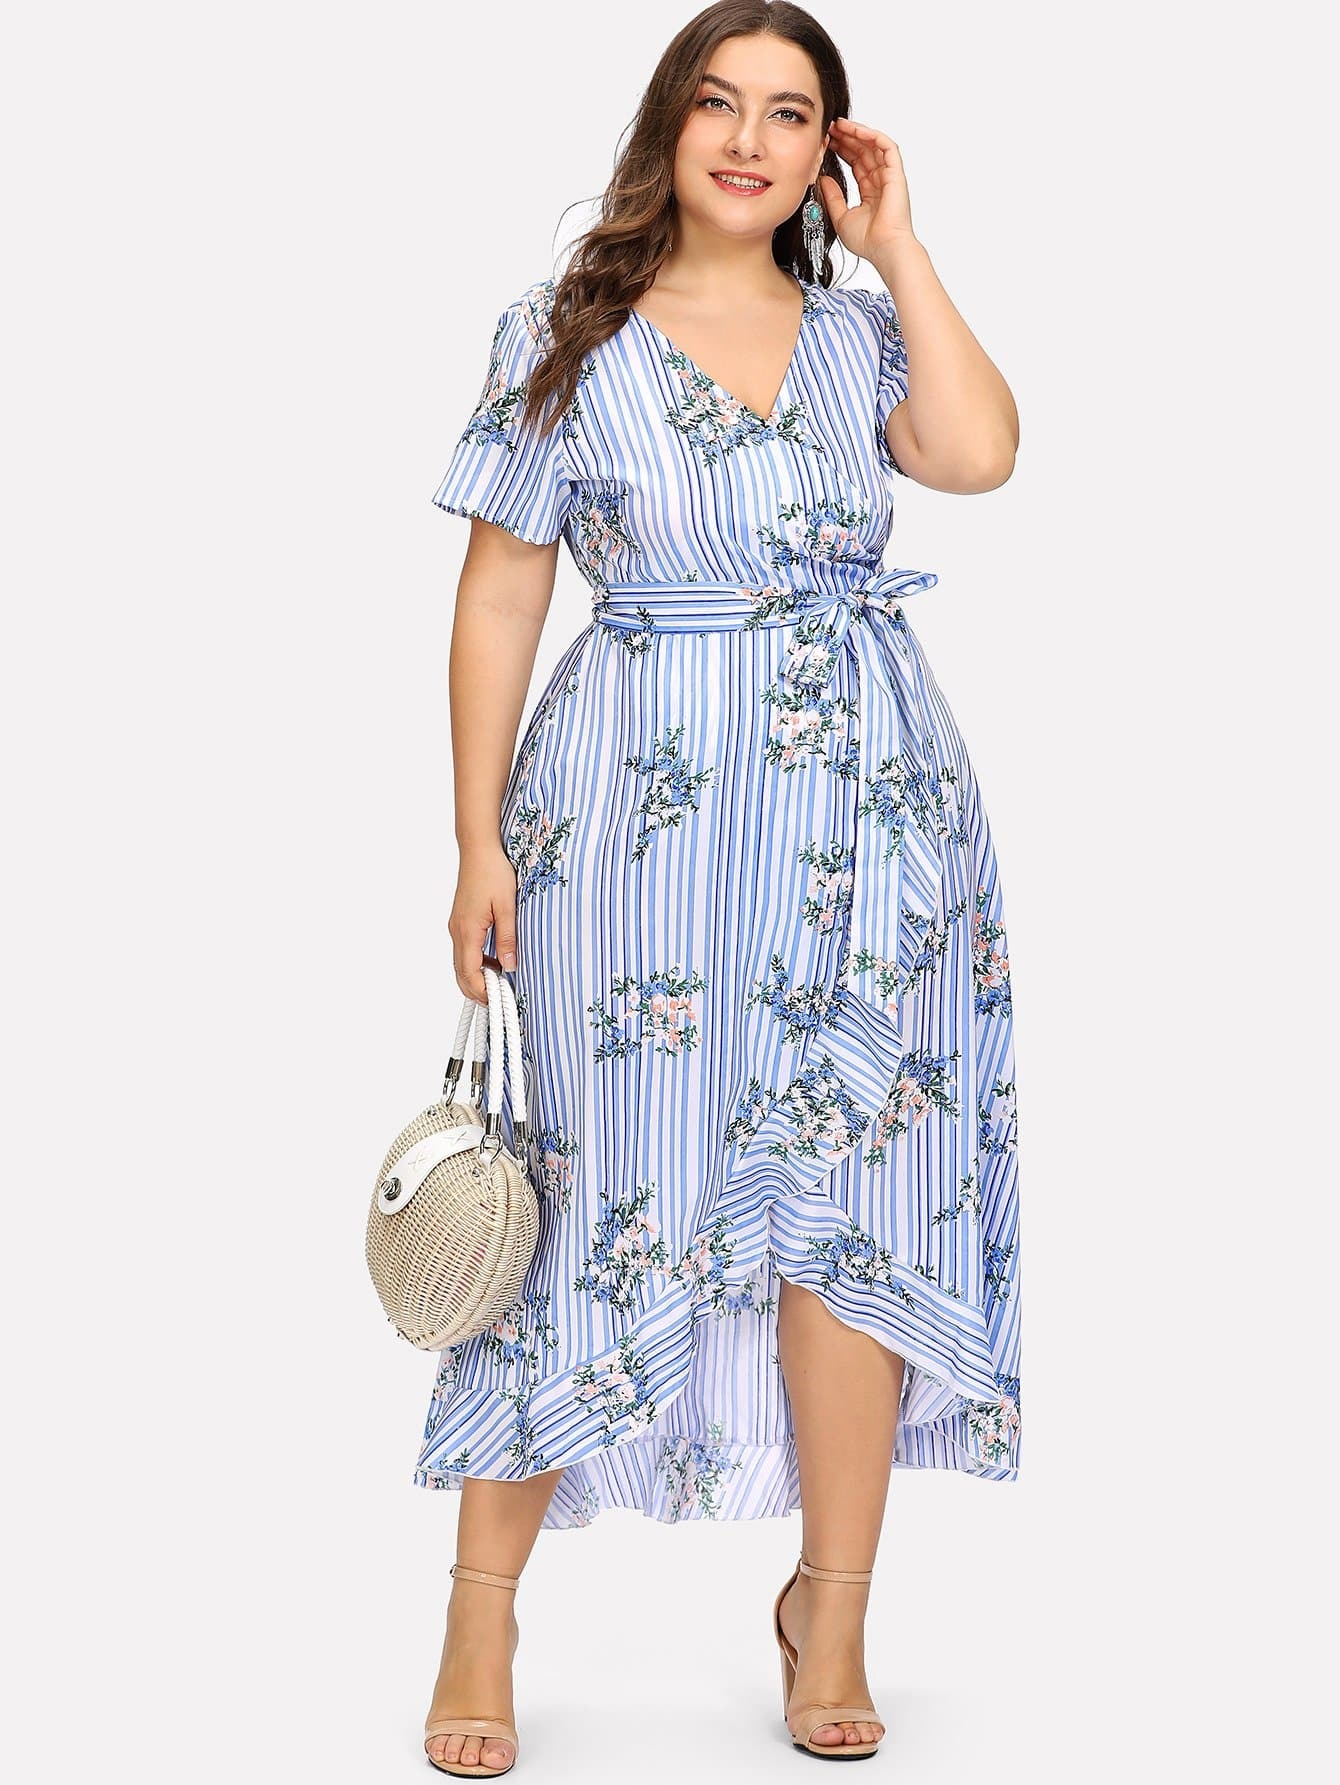 Ruffle Trim Floral & Striped Wrap Dress with Belt wrap front floral jumpsuit with belt